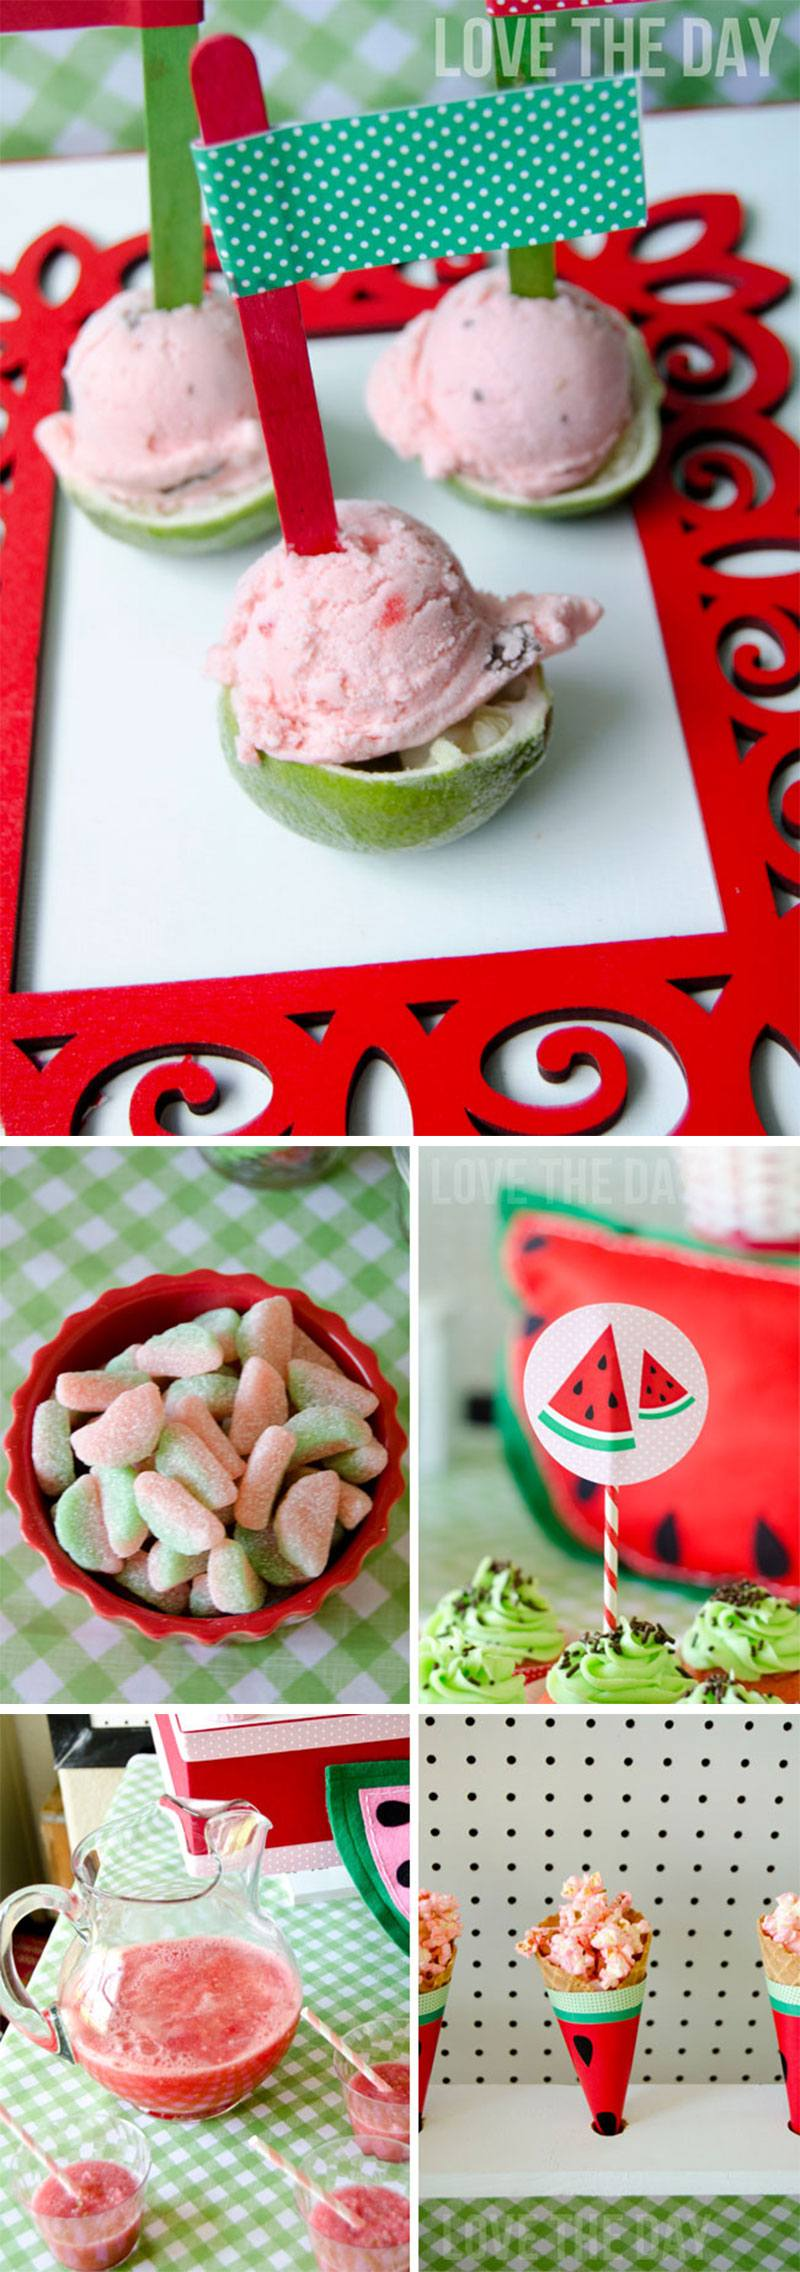 Watermelon Party Dessert Table by Lindi Haws of Love The Day